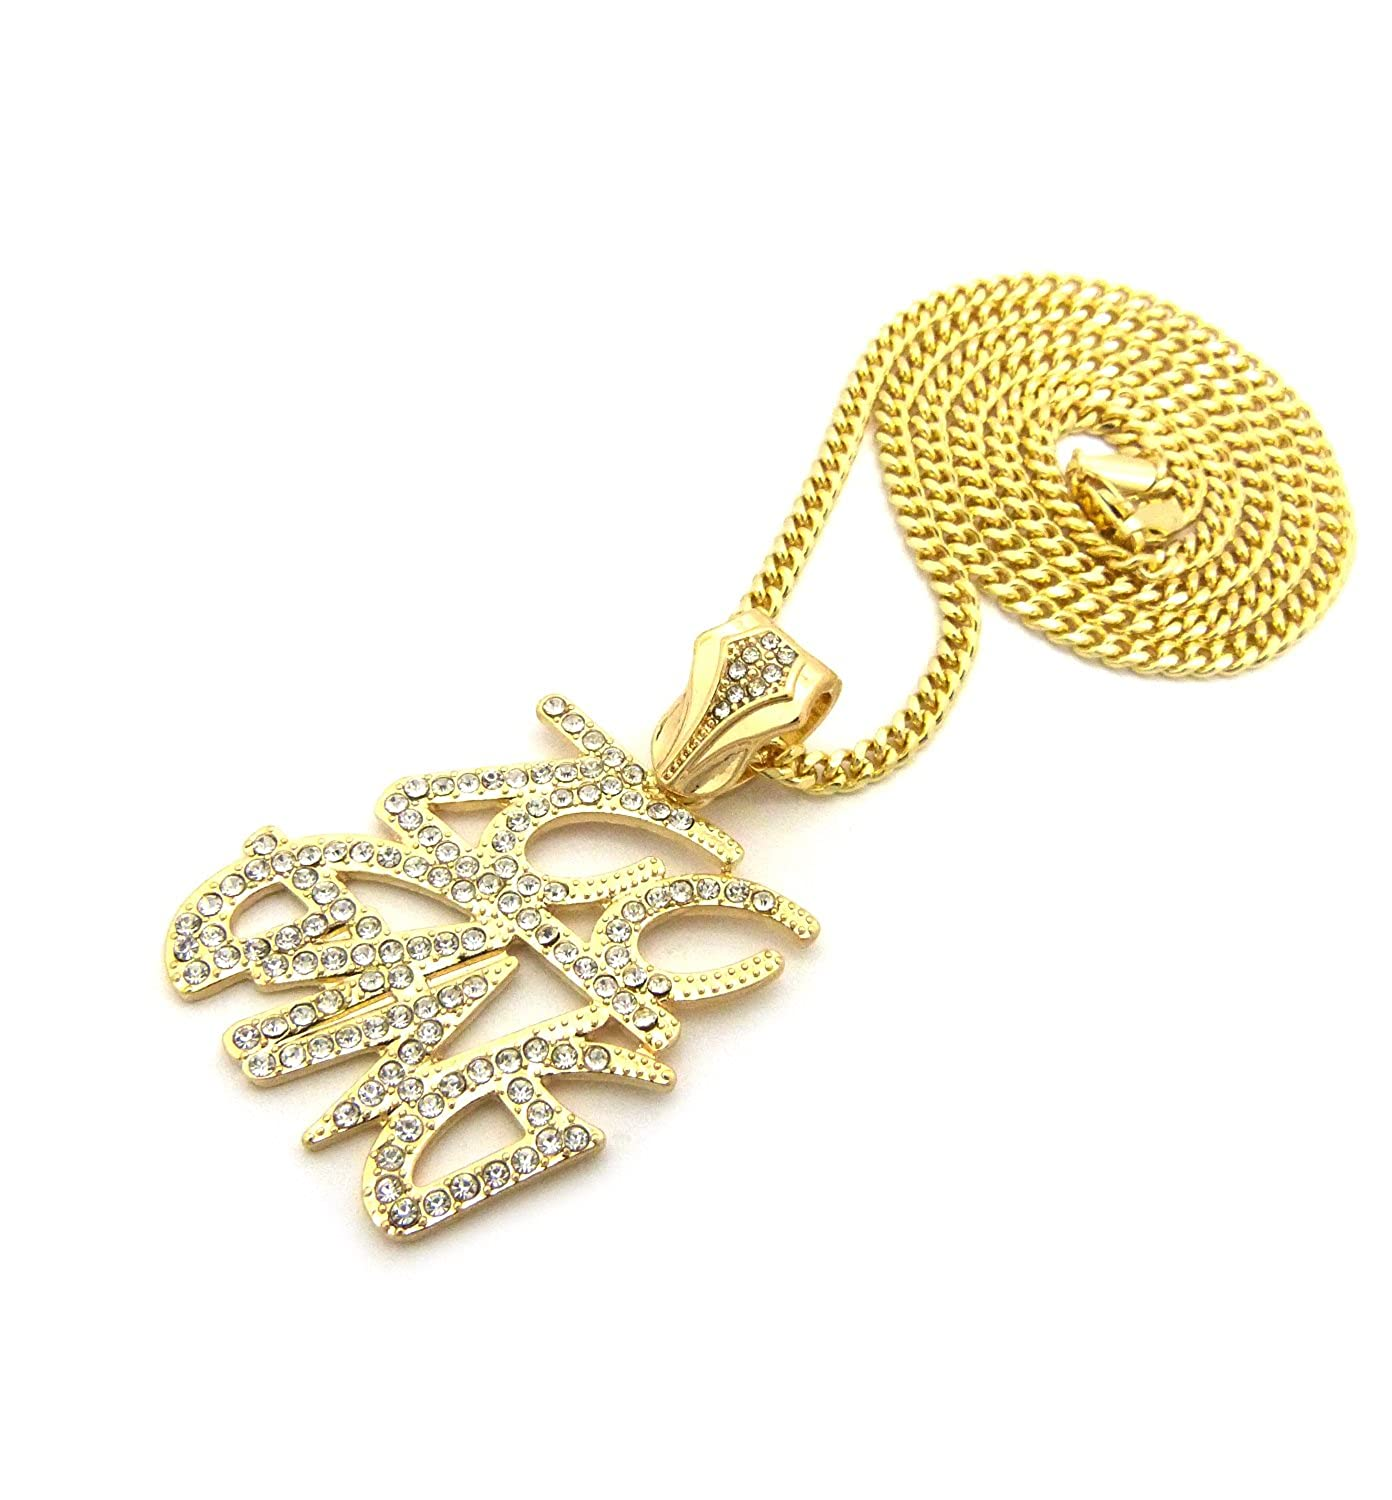 XZ133CCG NEW ICED OUT ZOO GANG PENDANT /&3mm//24 CUBAN CHAIN HIP HOP NECKLACE